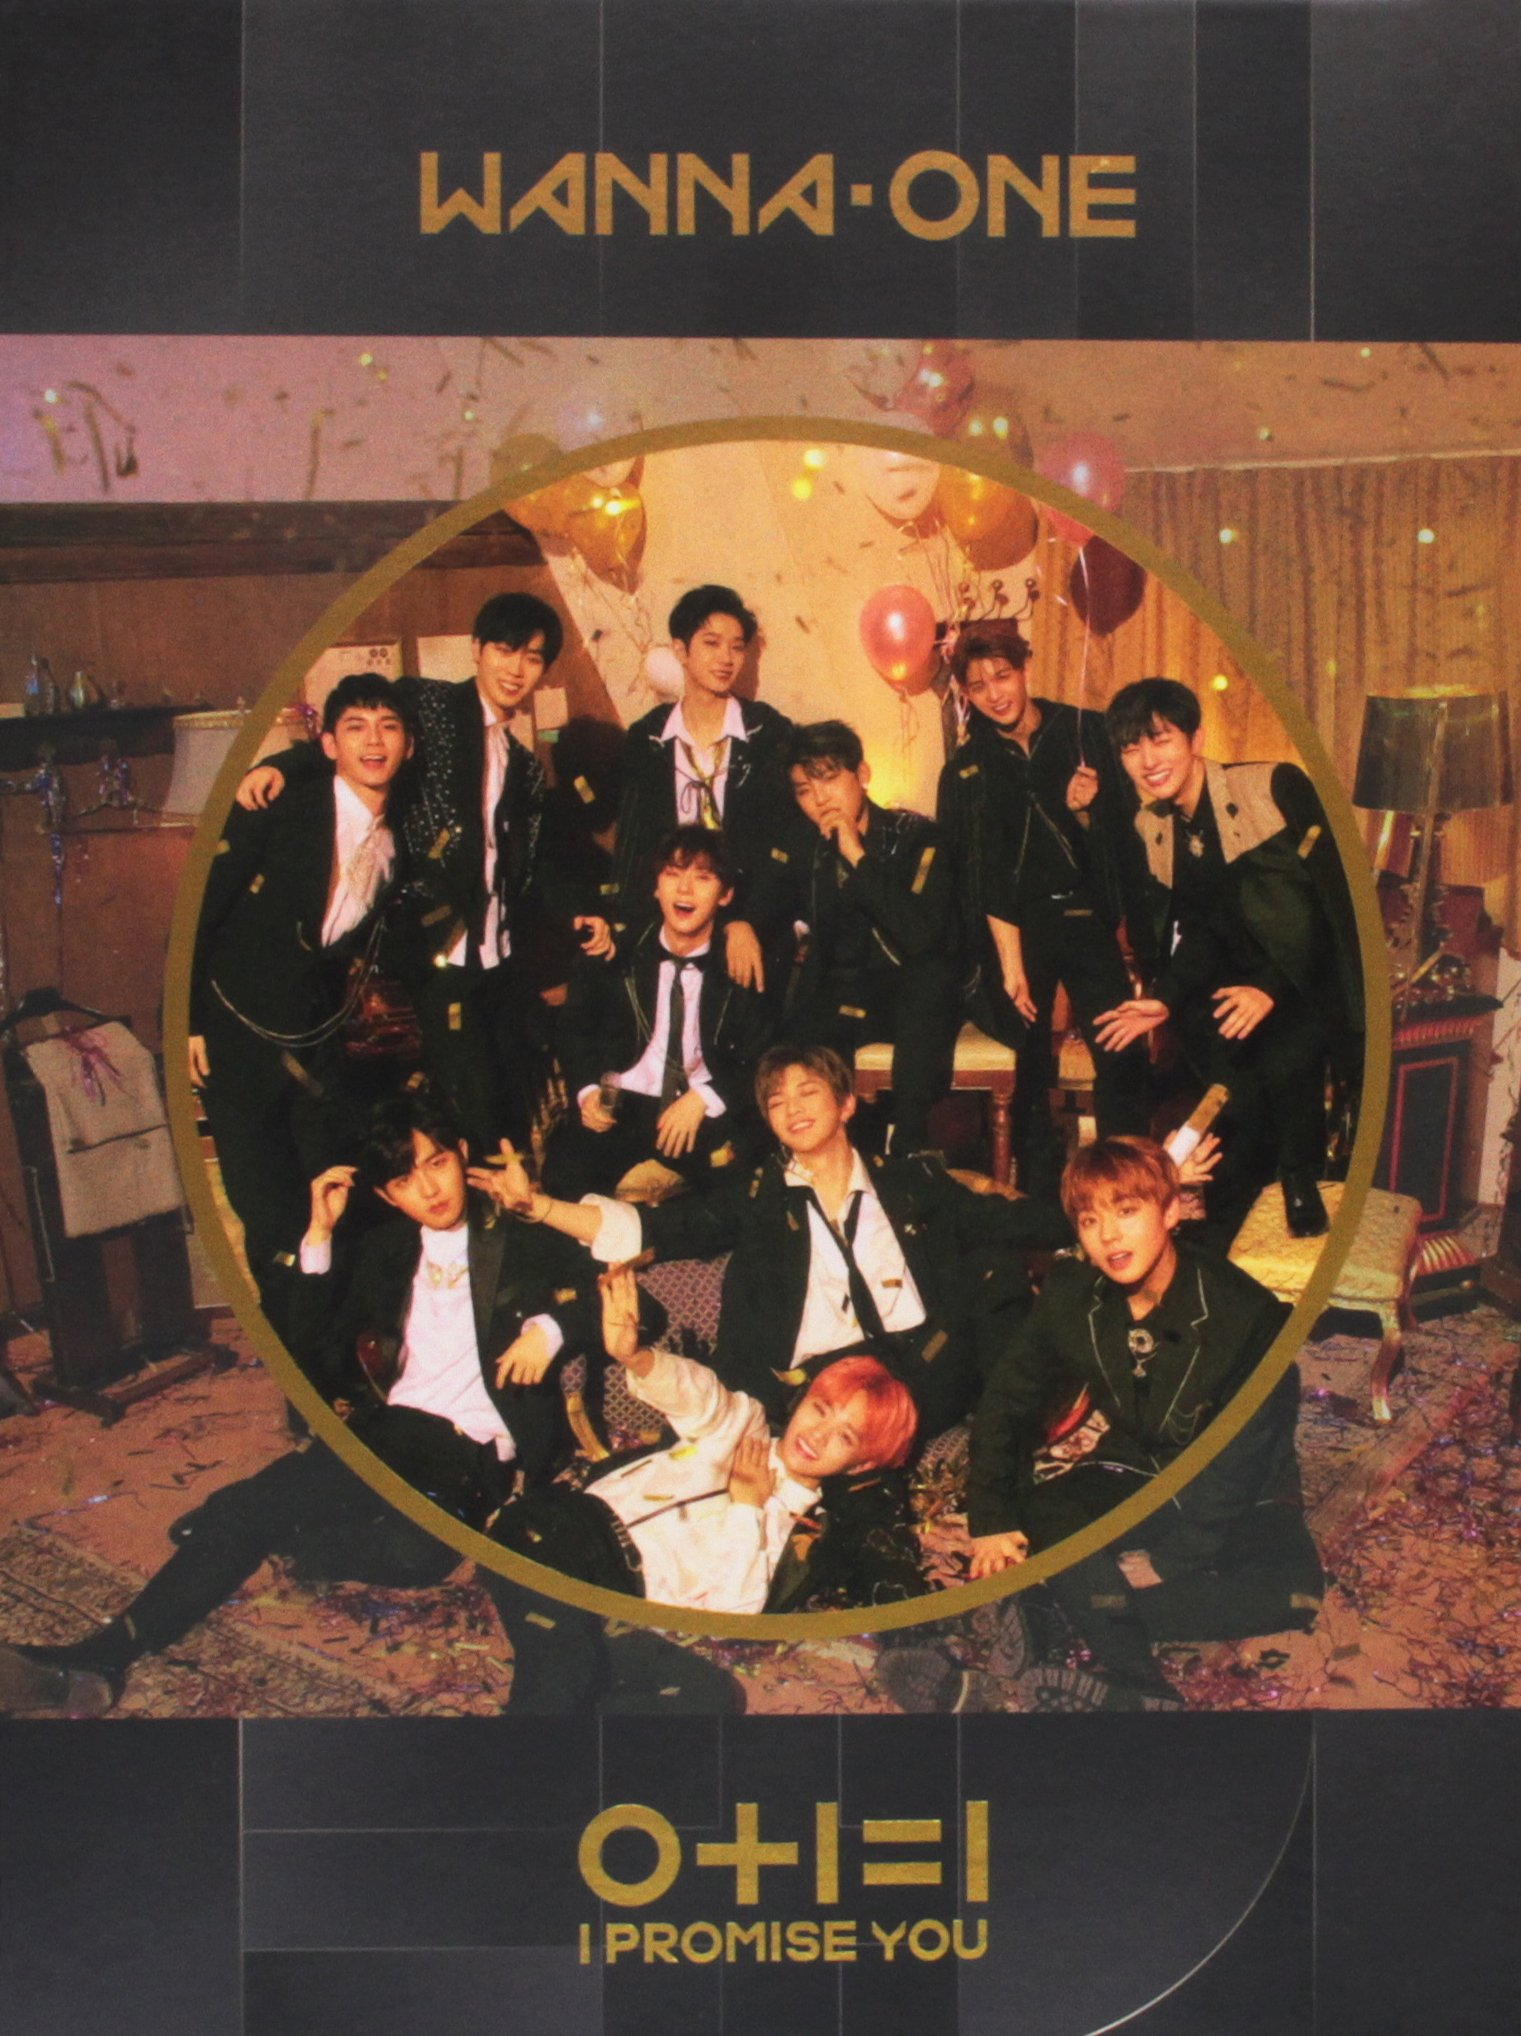 CD : Wanna One - 0+1=1 (i Promise You) (night Version) (cd+dvd Region 3) (With DVD, Asia - Import, NTSC Region 3, 2PC)